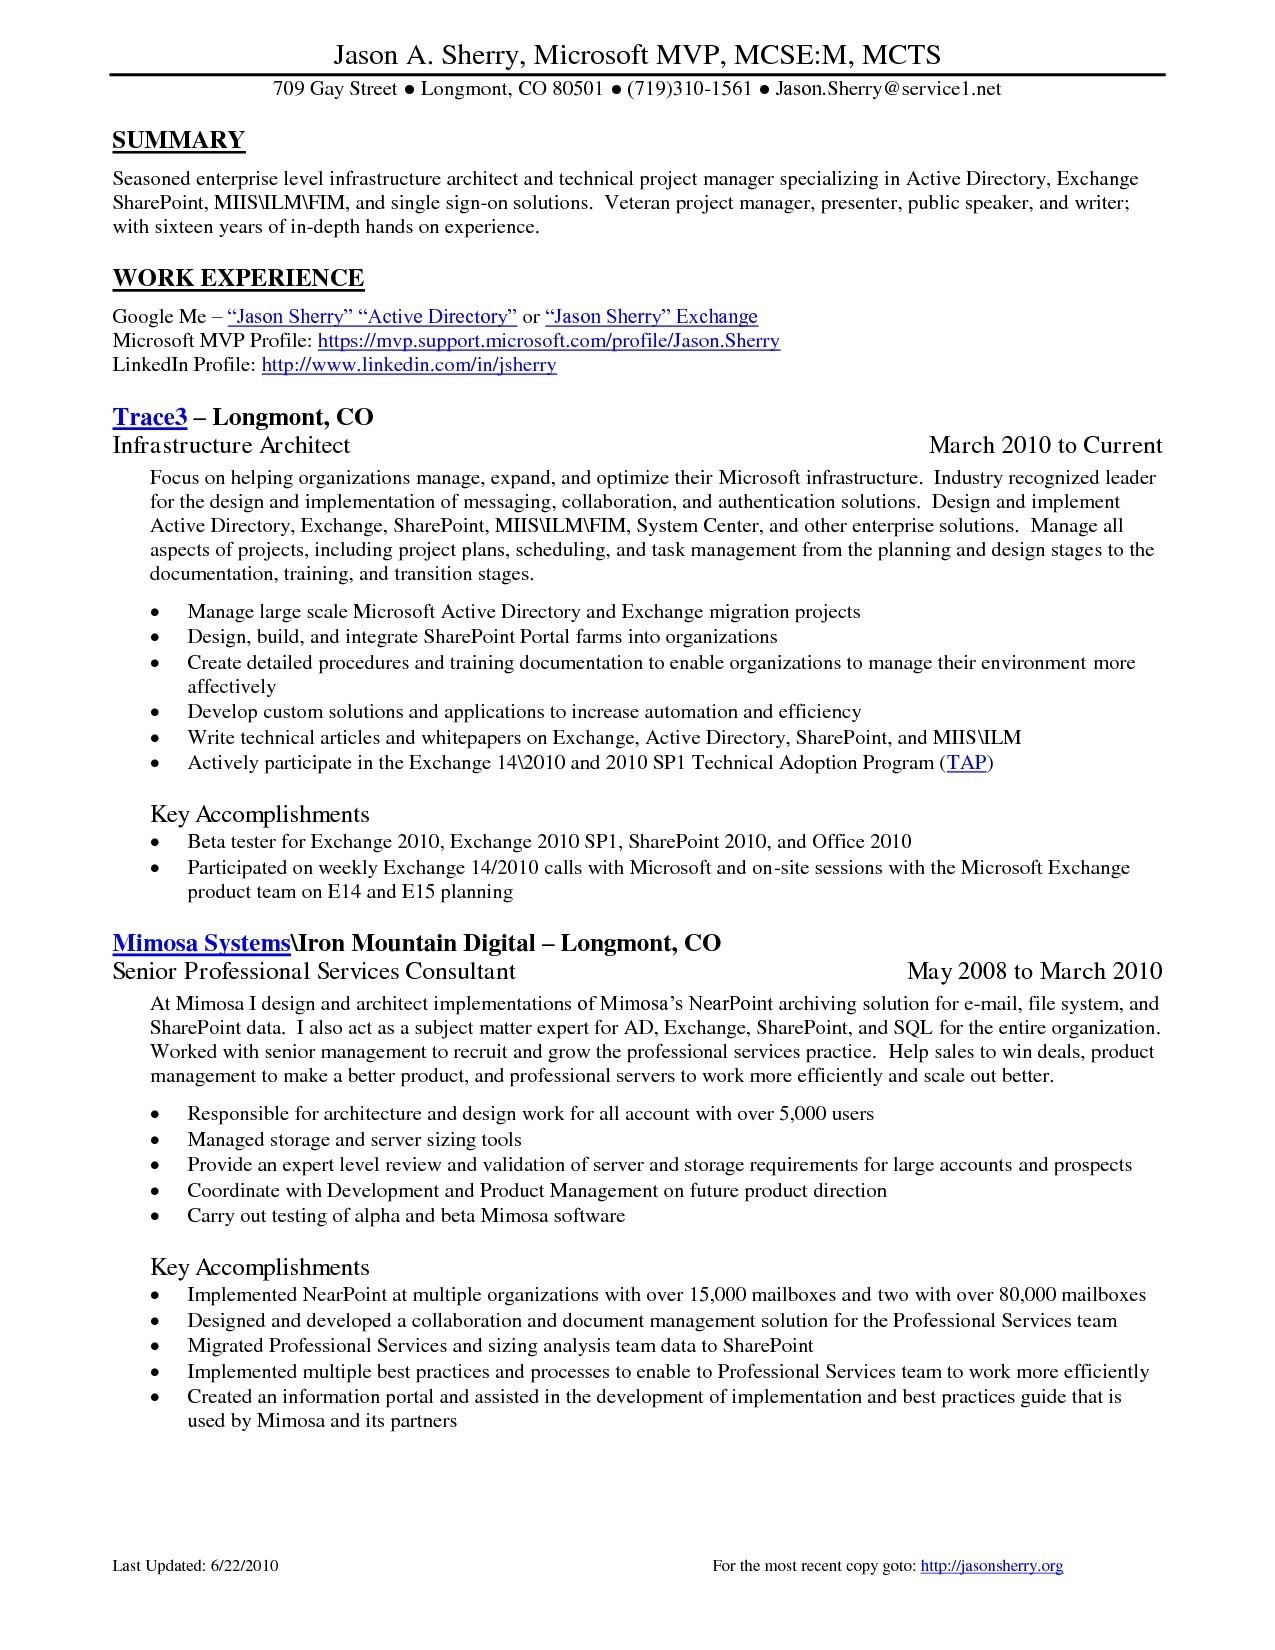 Public Speaking On Resume - 30 Beautiful Public Speaking Resume